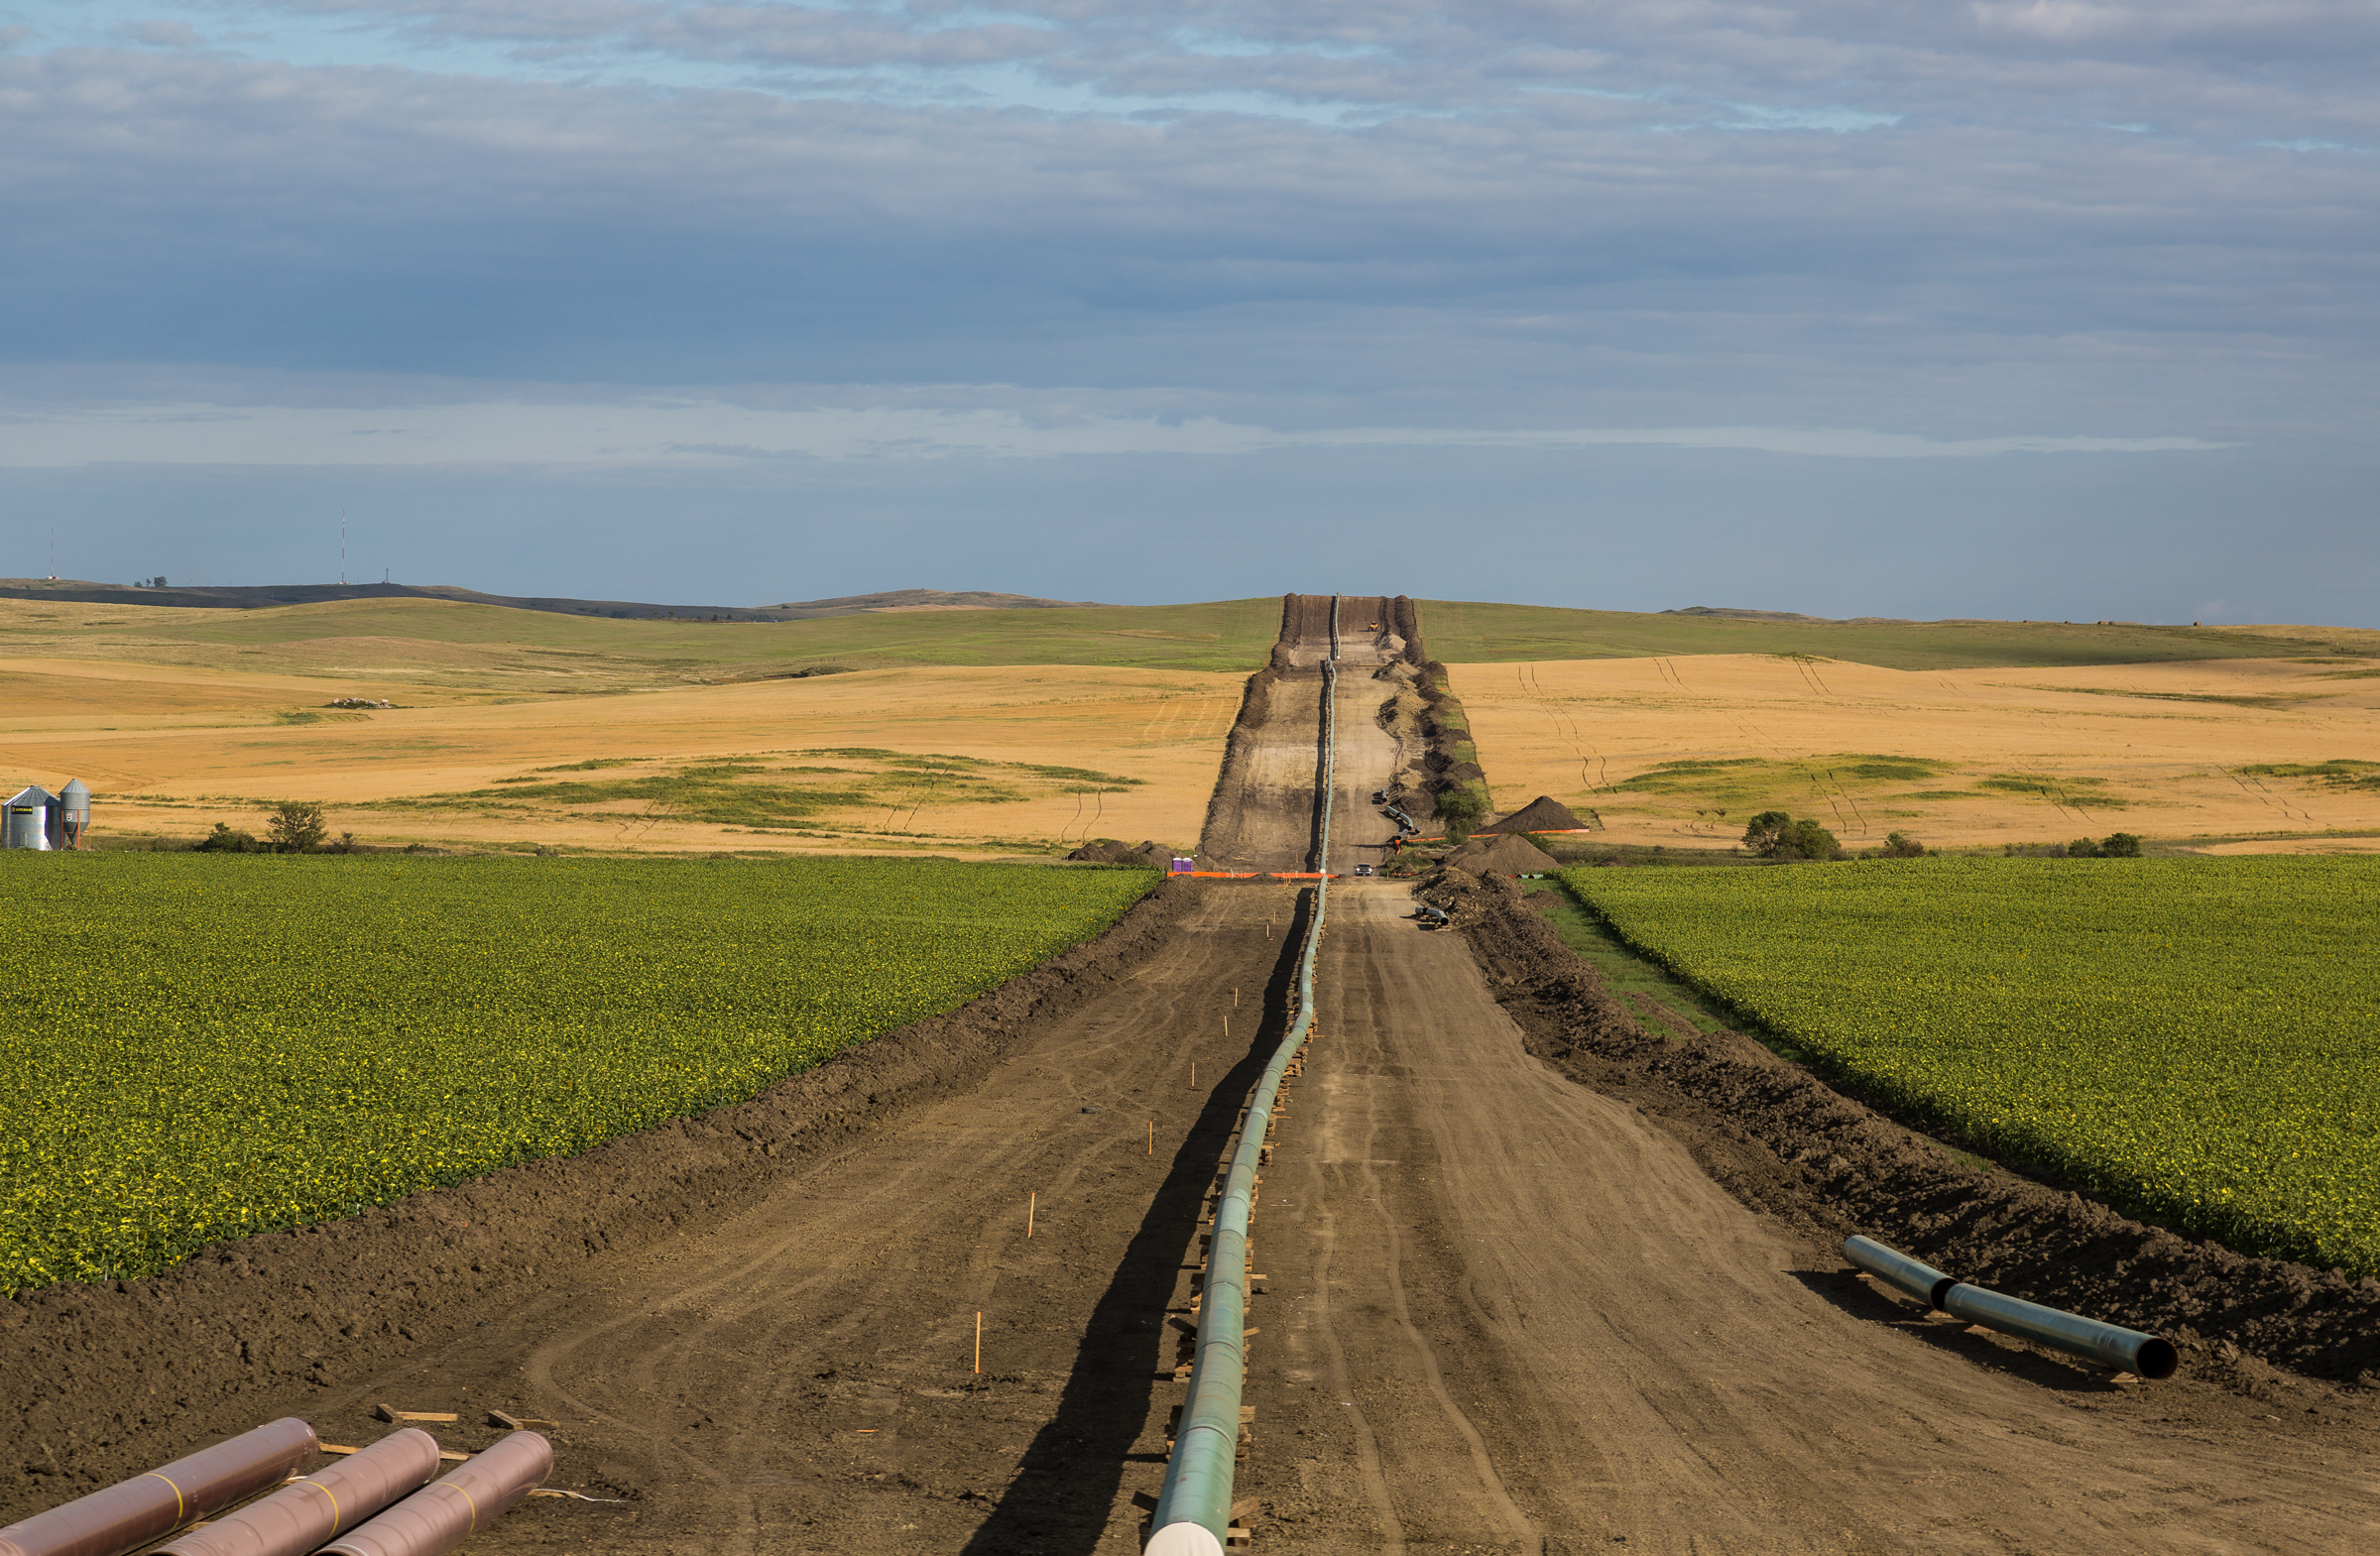 President Trump fast-tracked the Dakota Access oil pipeline in his first days in office, but courts have since ordered more careful environmental review. Tony Webster/Flickr (CC BY SA 2.0)